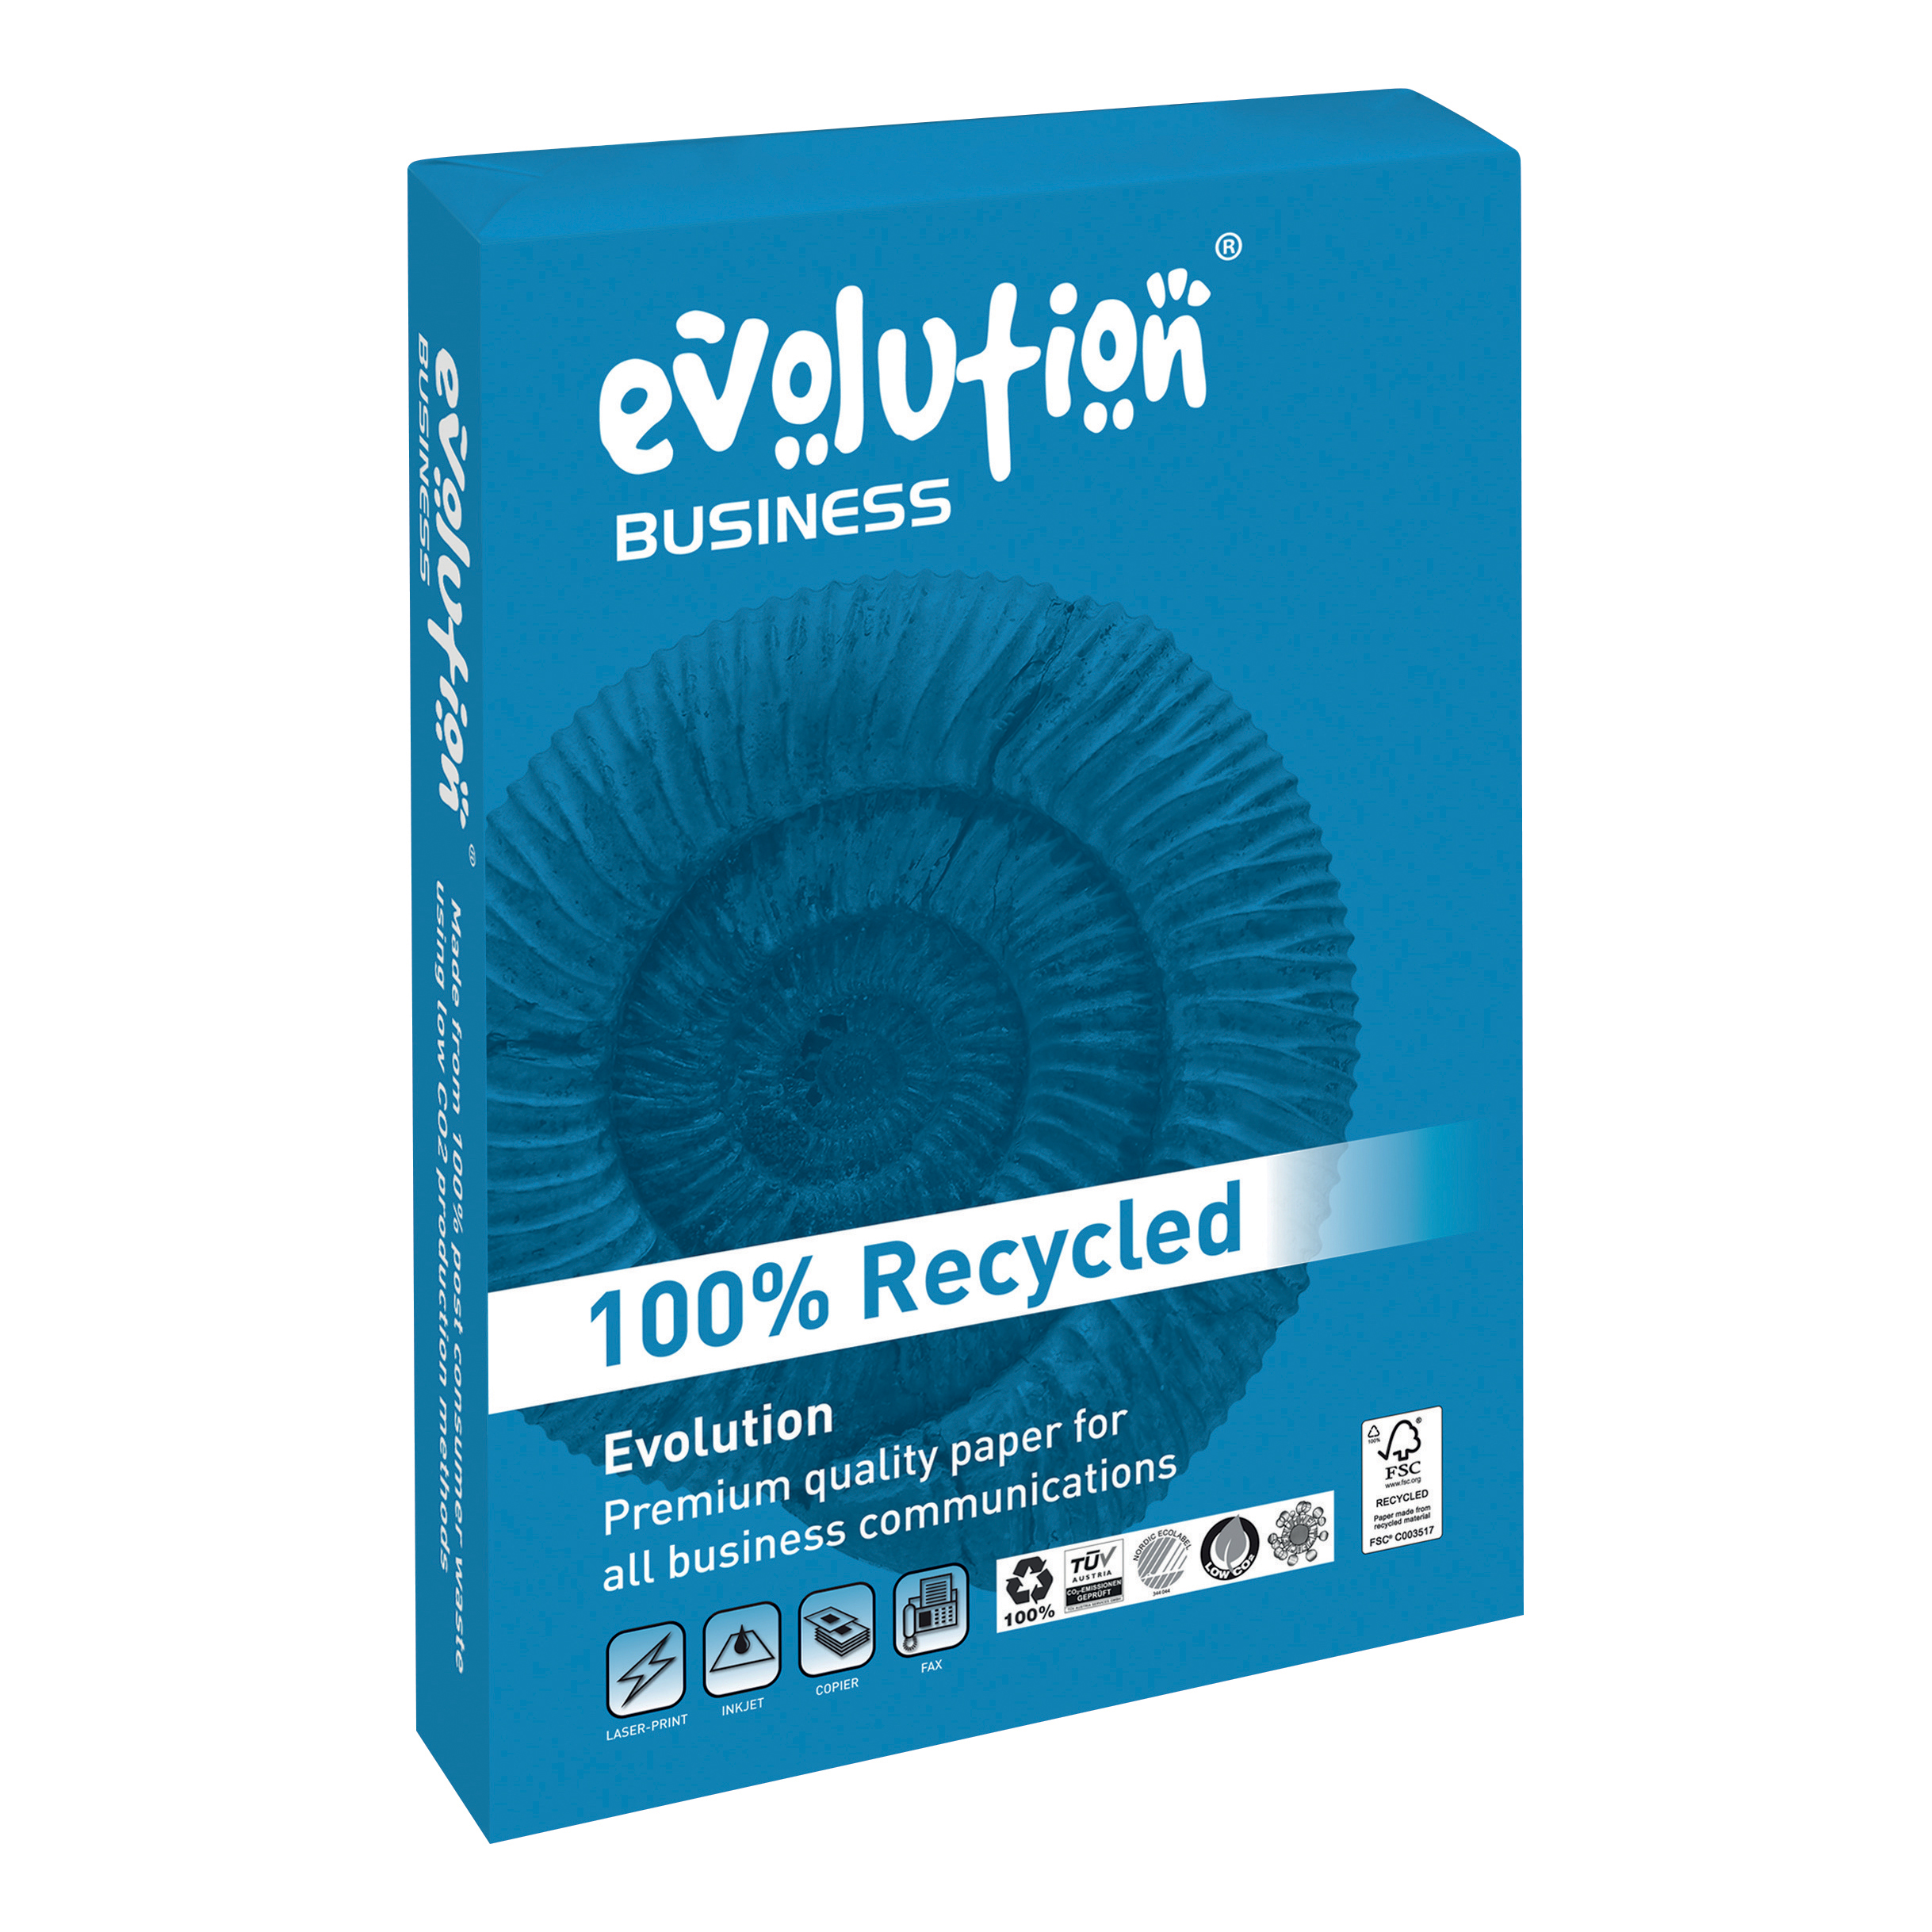 A3 Evolution Business Paper FSC Recycled Ream-wrapped 80gsm A3 White Ref EVBU4280 500 Sheets